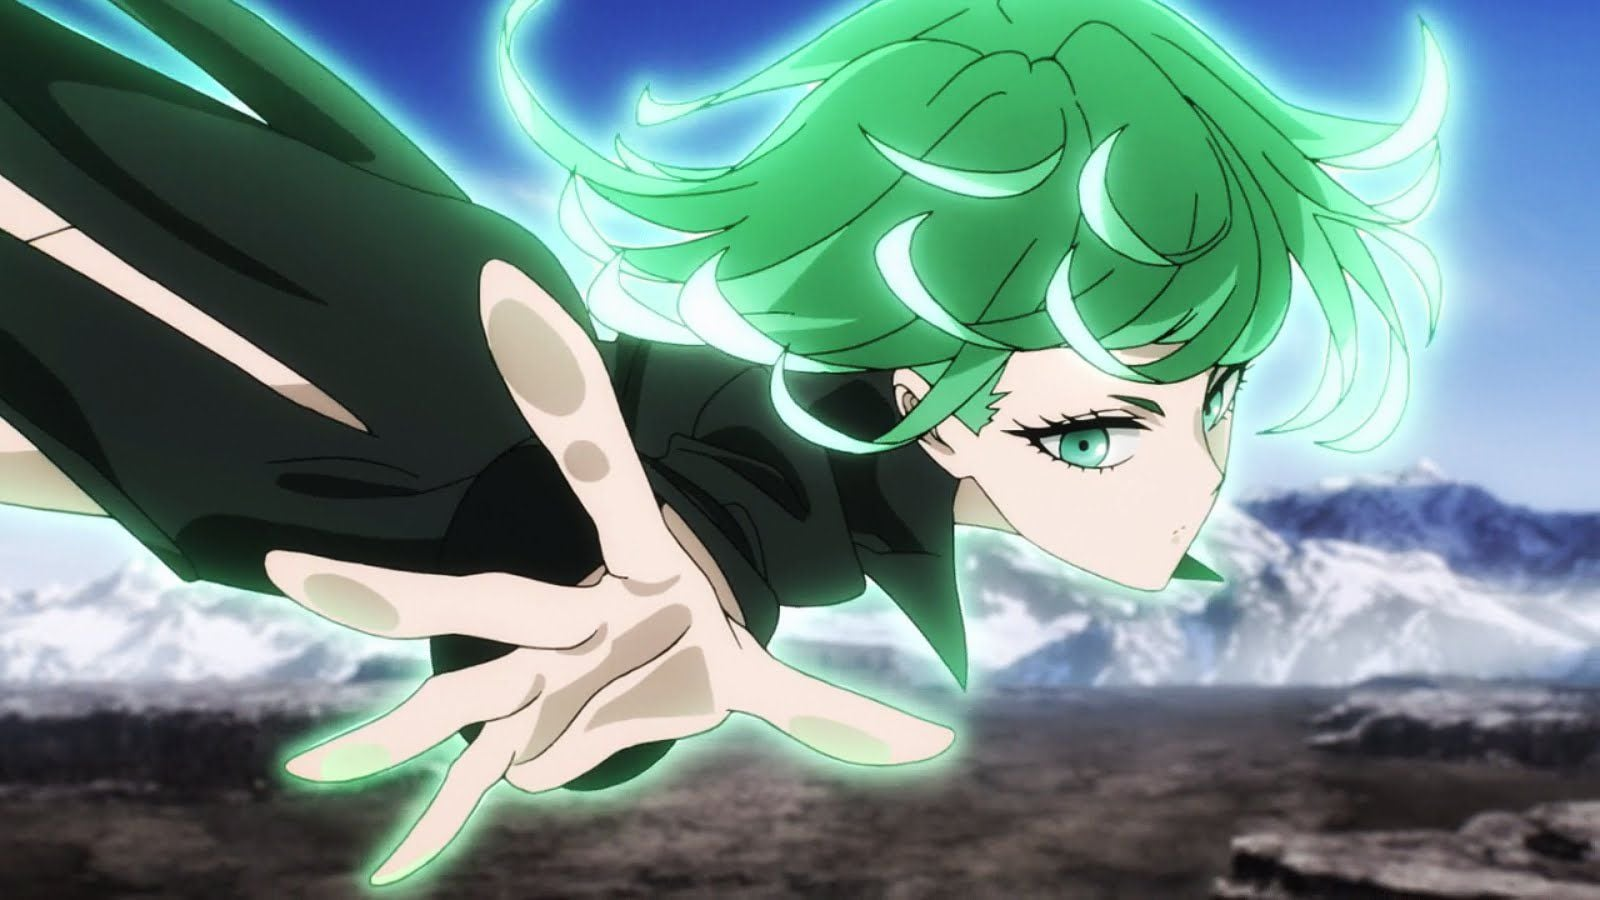 Anime Girl Epic Wallpapers 17 Tatsumaki Hd Wallpapers Download